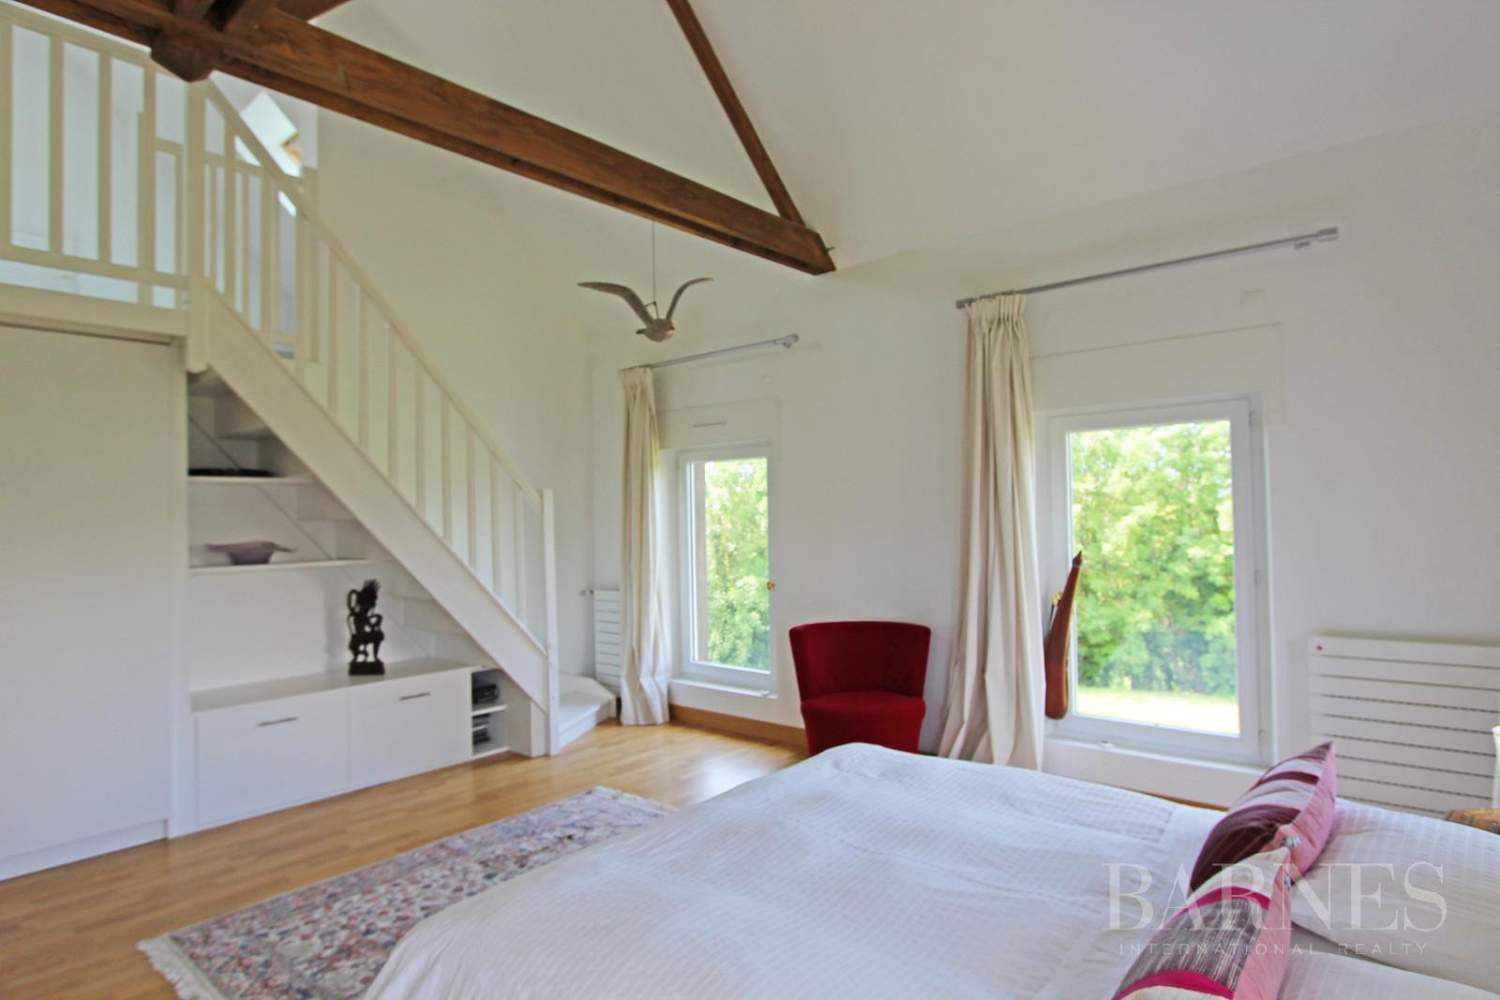 ENGLESQUEVILLE EN AUGE  - House 5 Bedrooms - picture 16